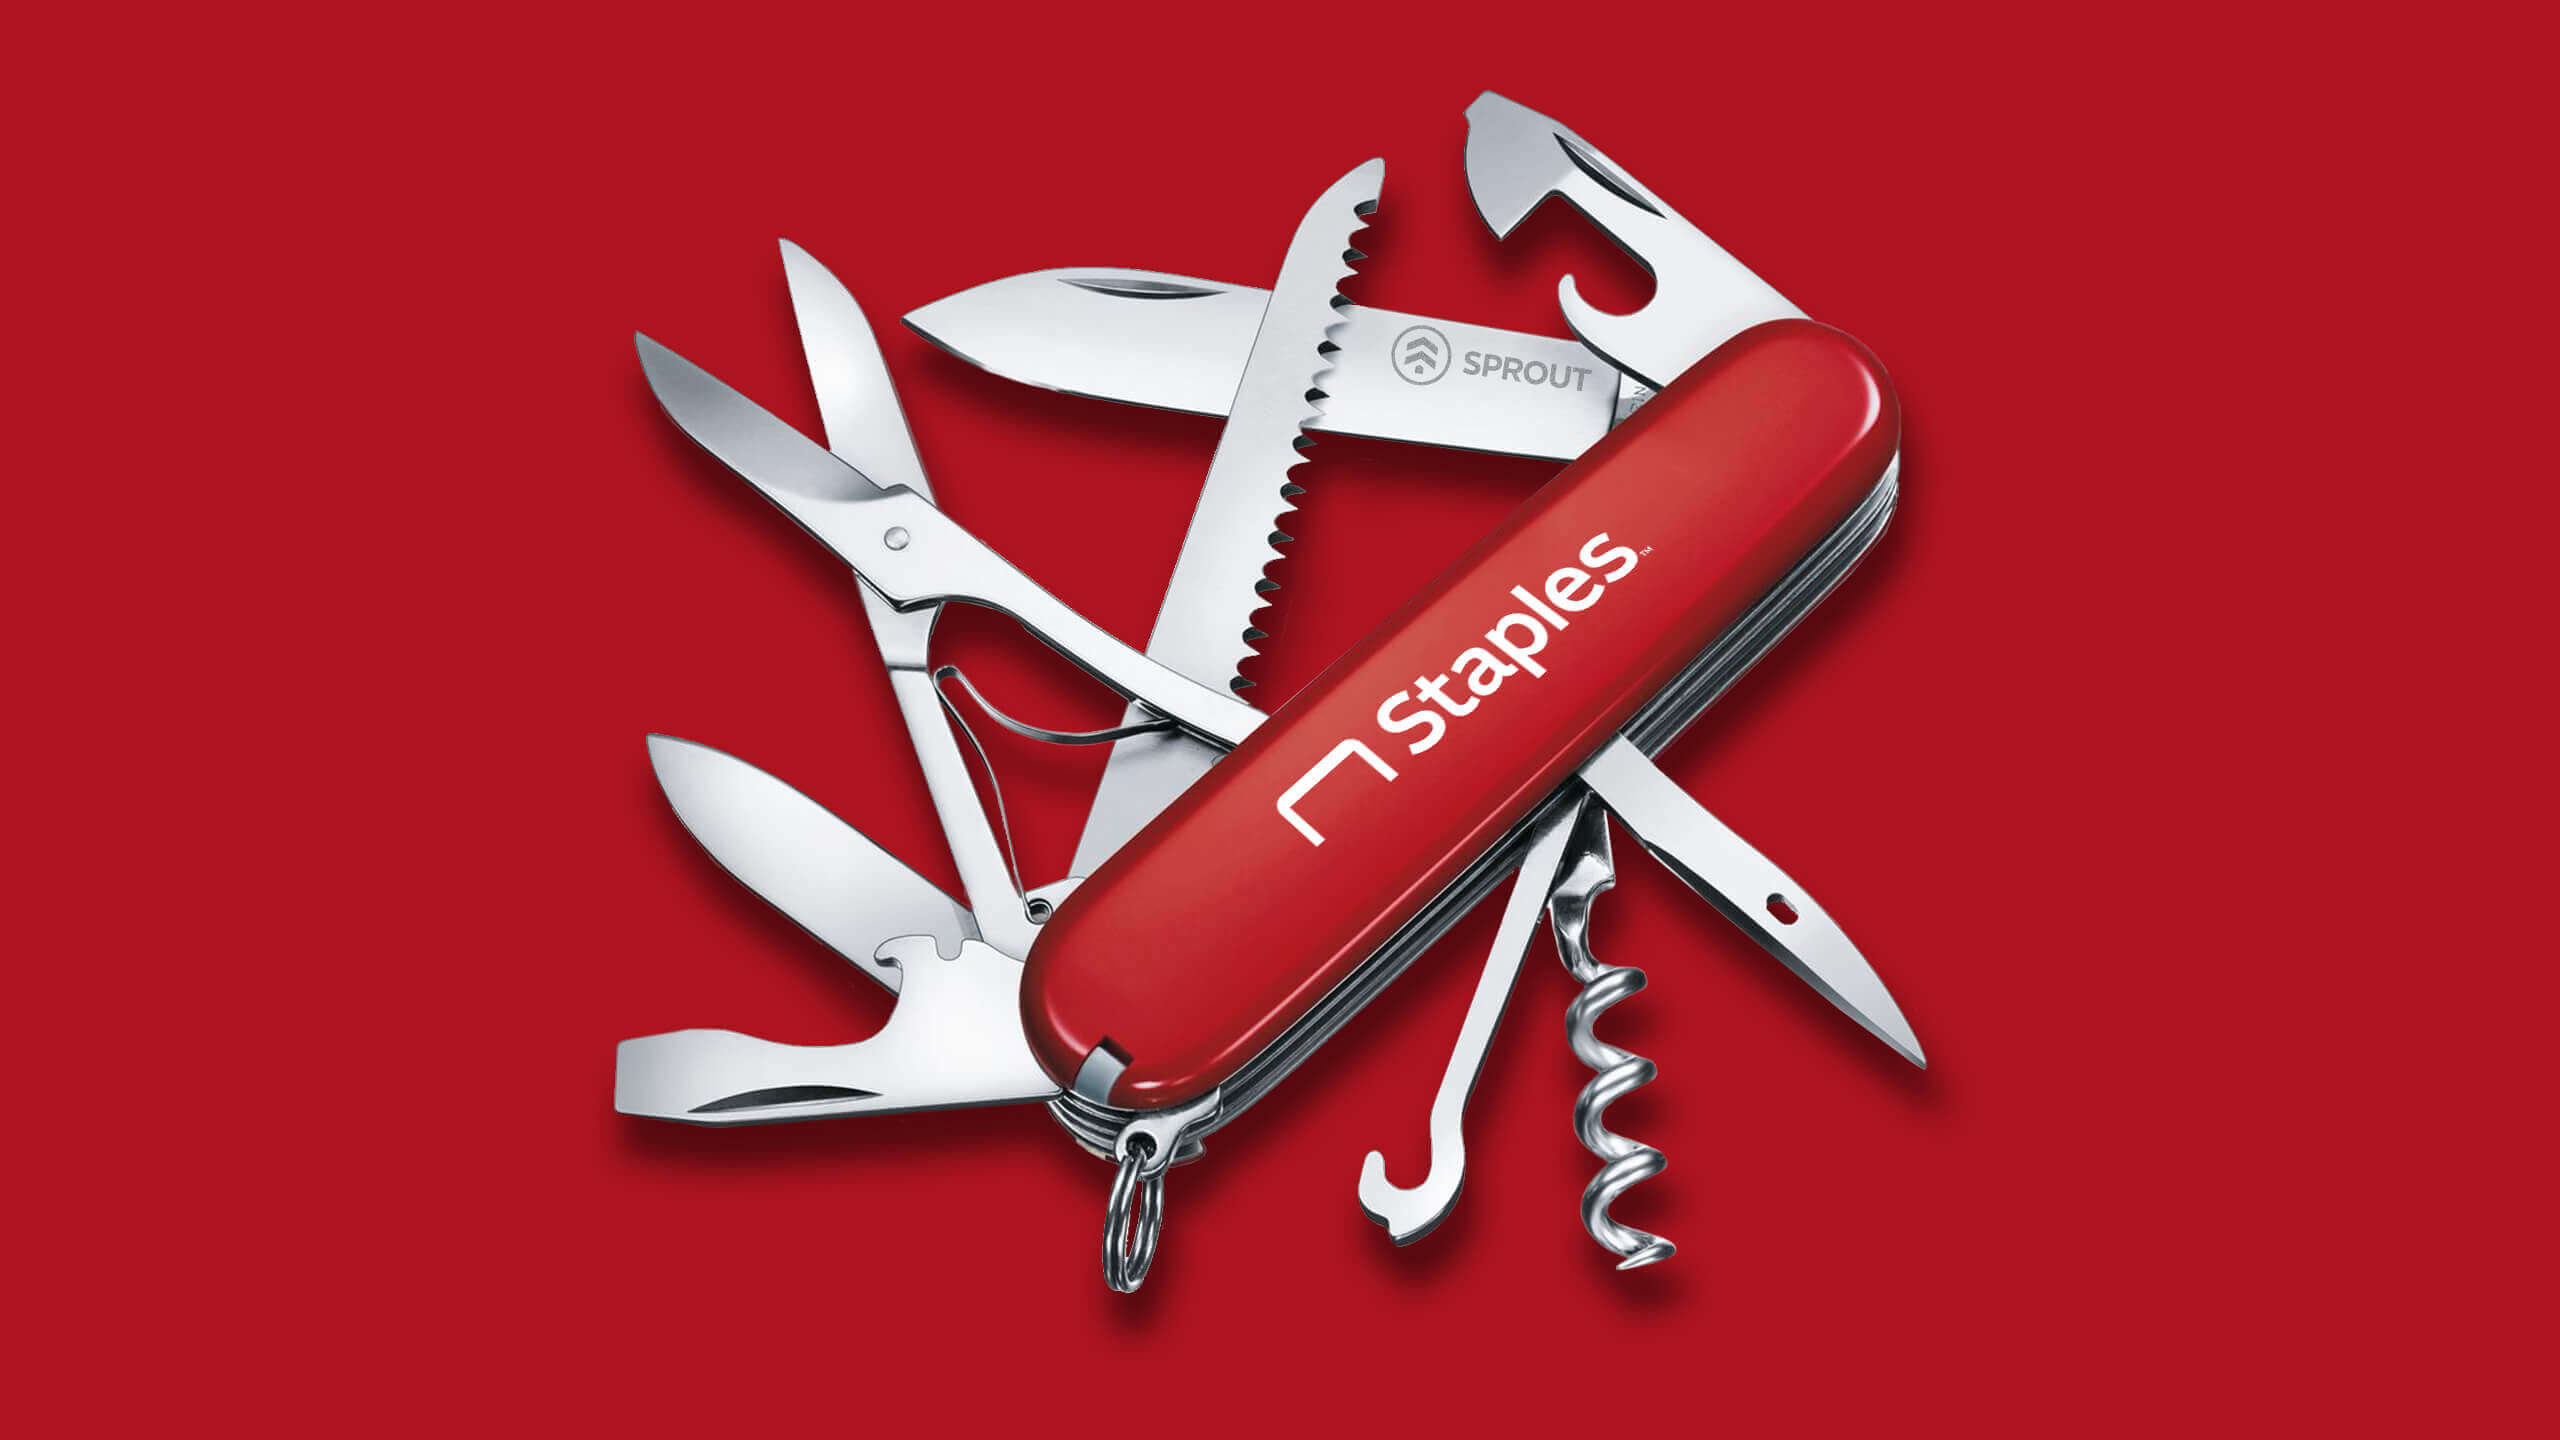 Staples Swiss Army knife CAD Render by Sprout Studios